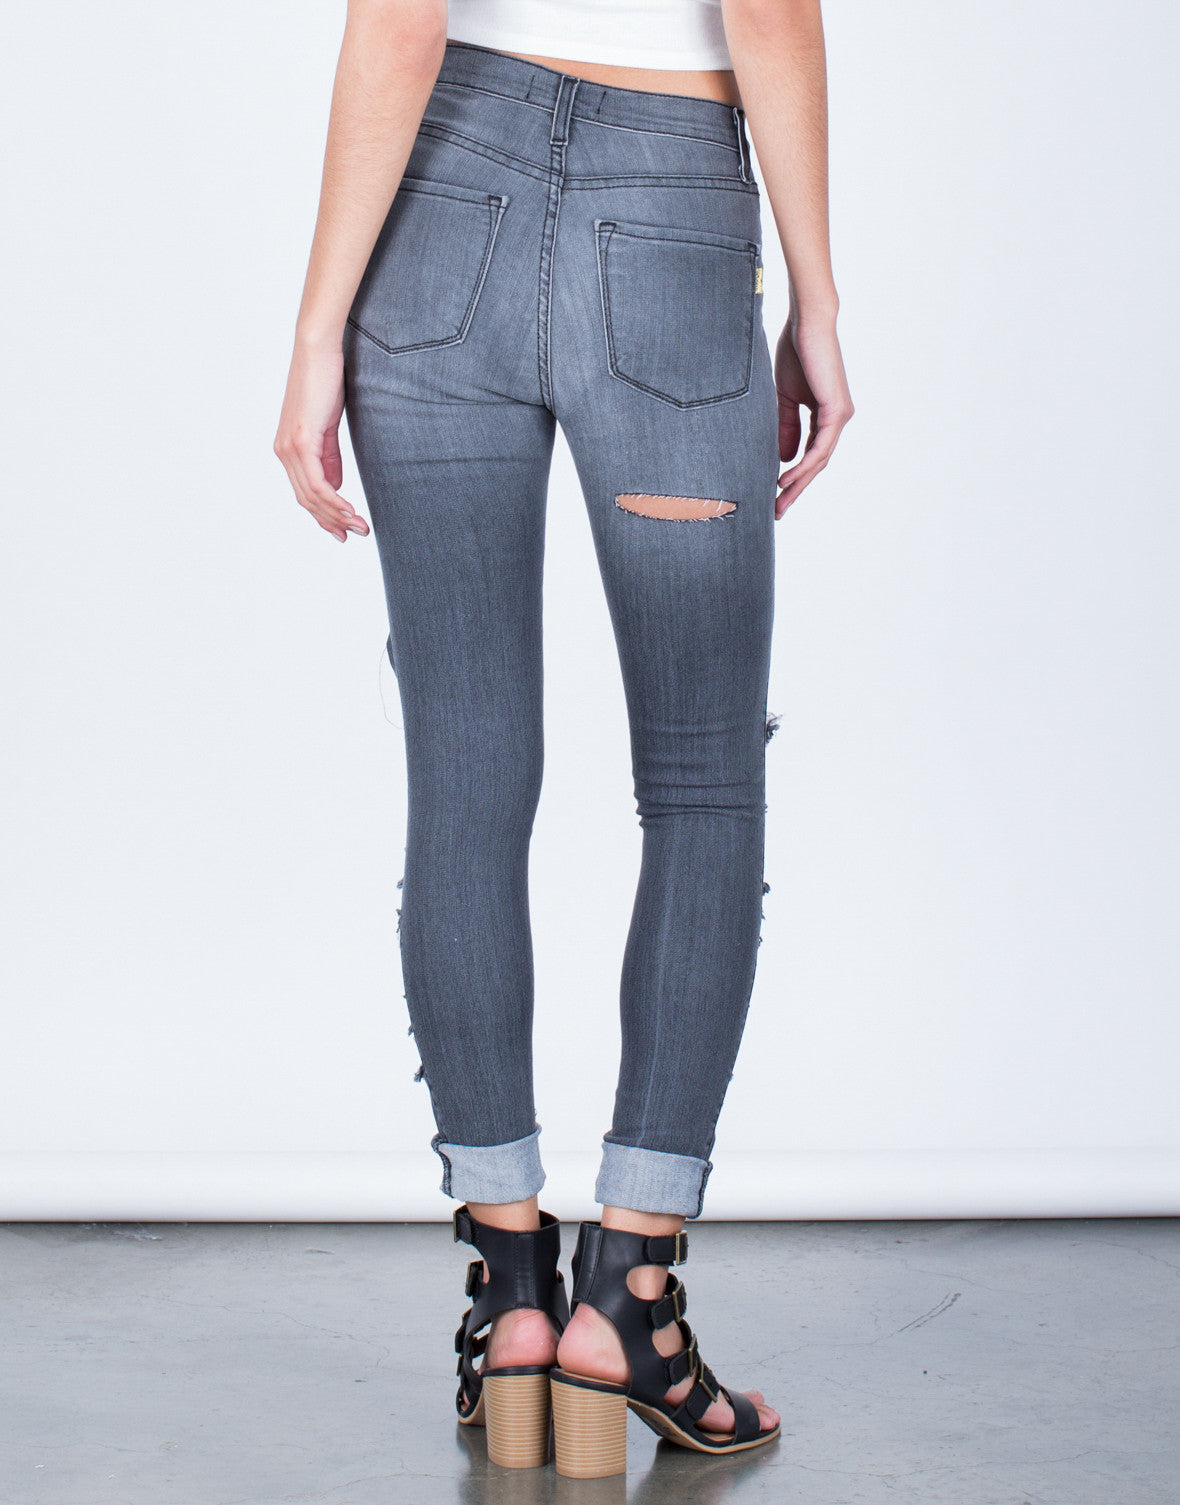 Free shipping & returns on high-waisted jeans for women at fabulousdown4allb7.cf Shop for high waisted jeans by leg style, wash, waist size, and more from top brands. Free shipping and returns.